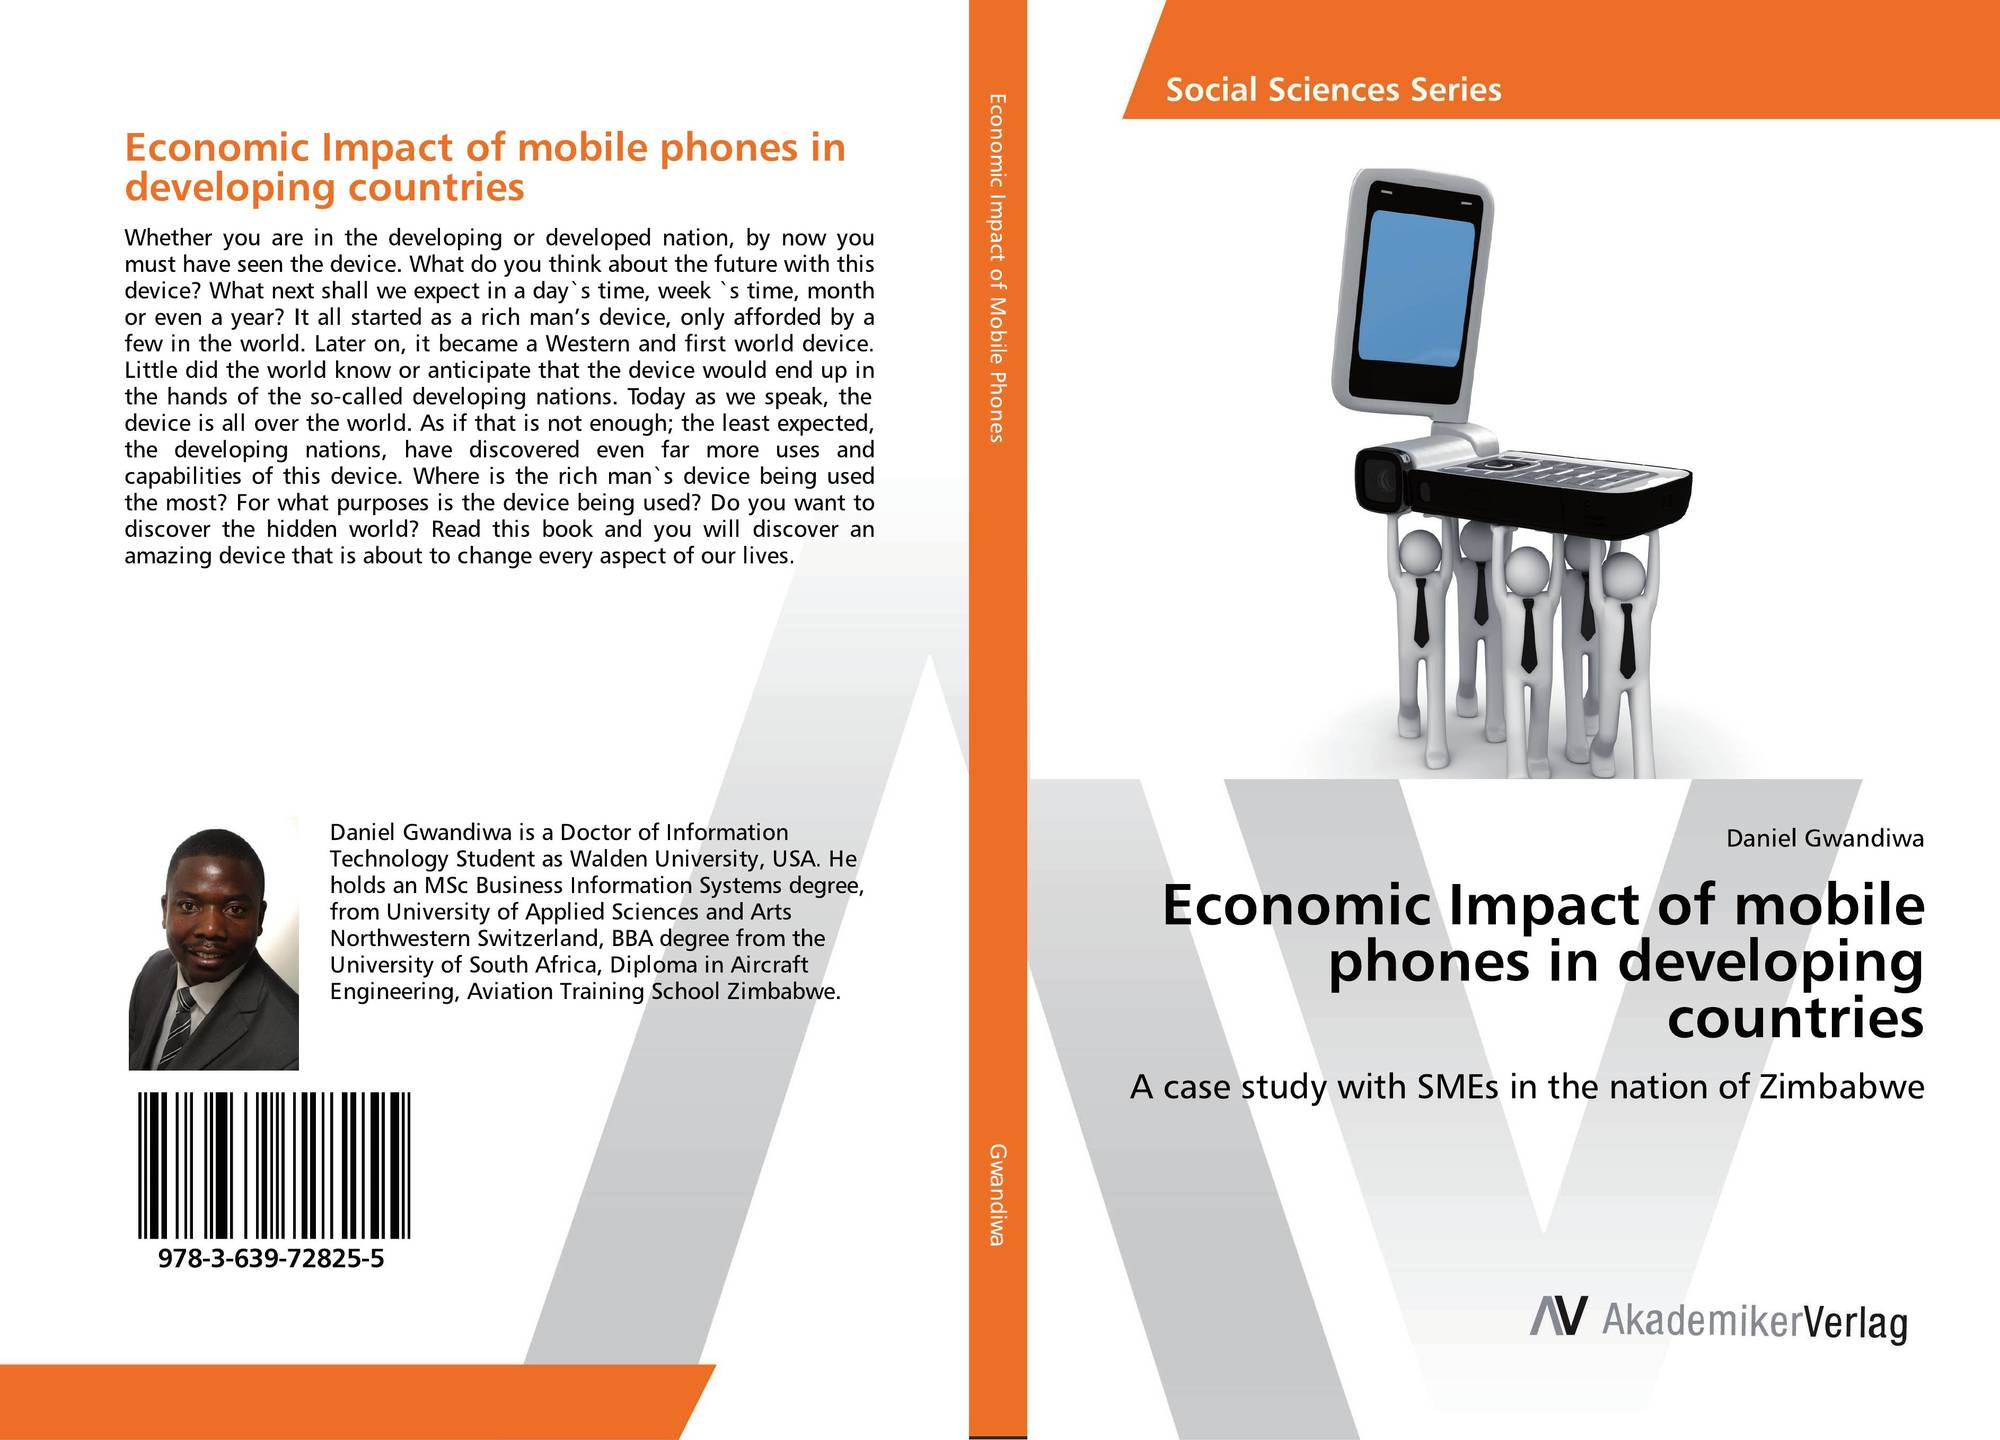 impact of cell phones What is the impact of mobile telephony on productivity in developing markets  mobile phones have improved communication, social inclusion, economic activity and.